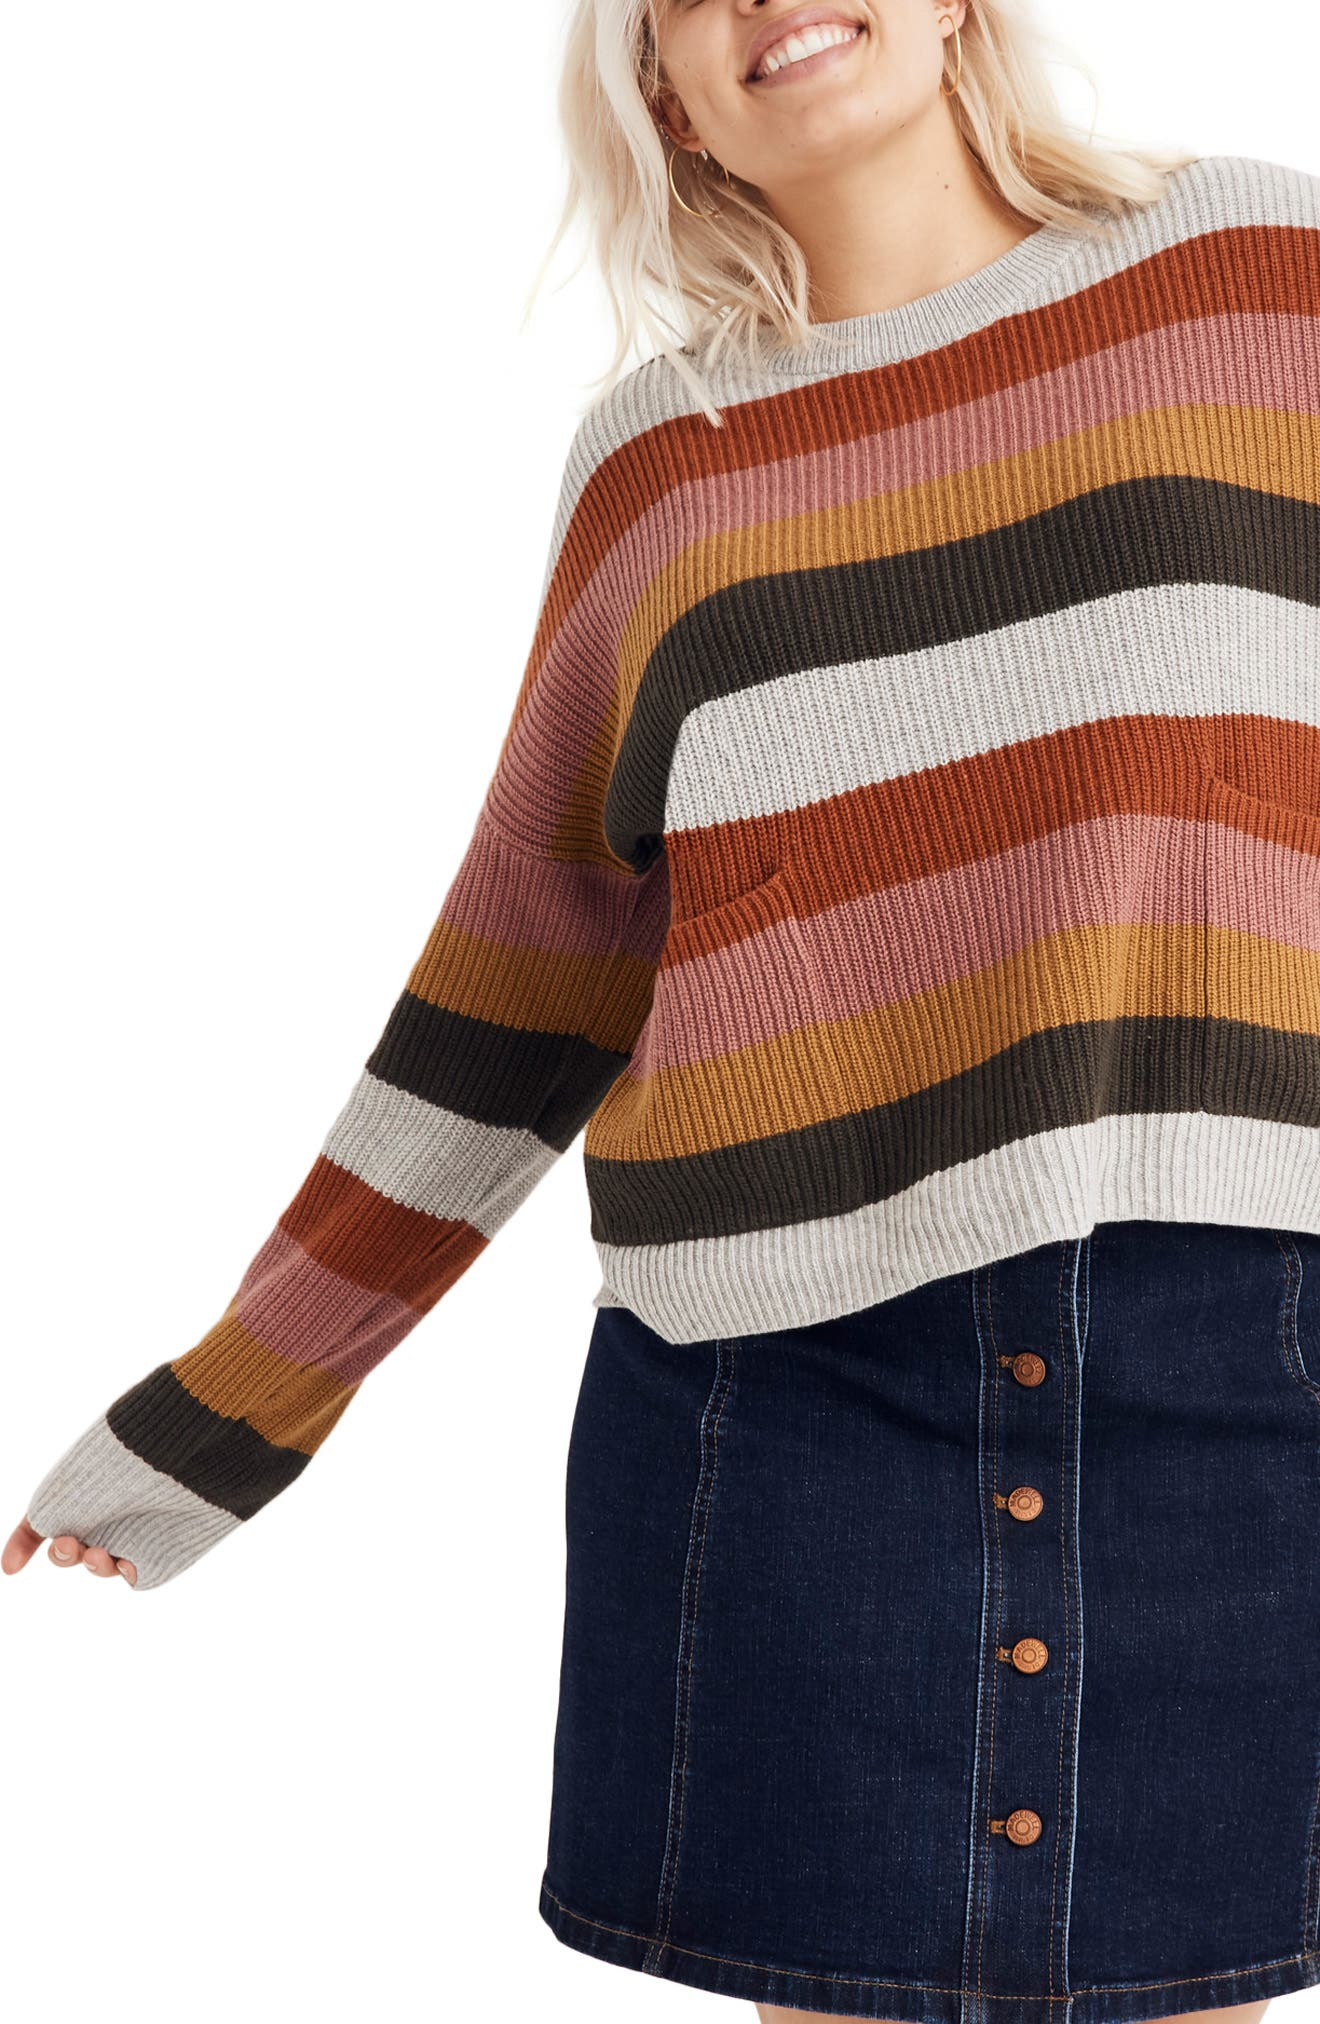 Patch Pocket Pullover Sweater,                             Alternate thumbnail 2, color,                             ARCTIC ICE